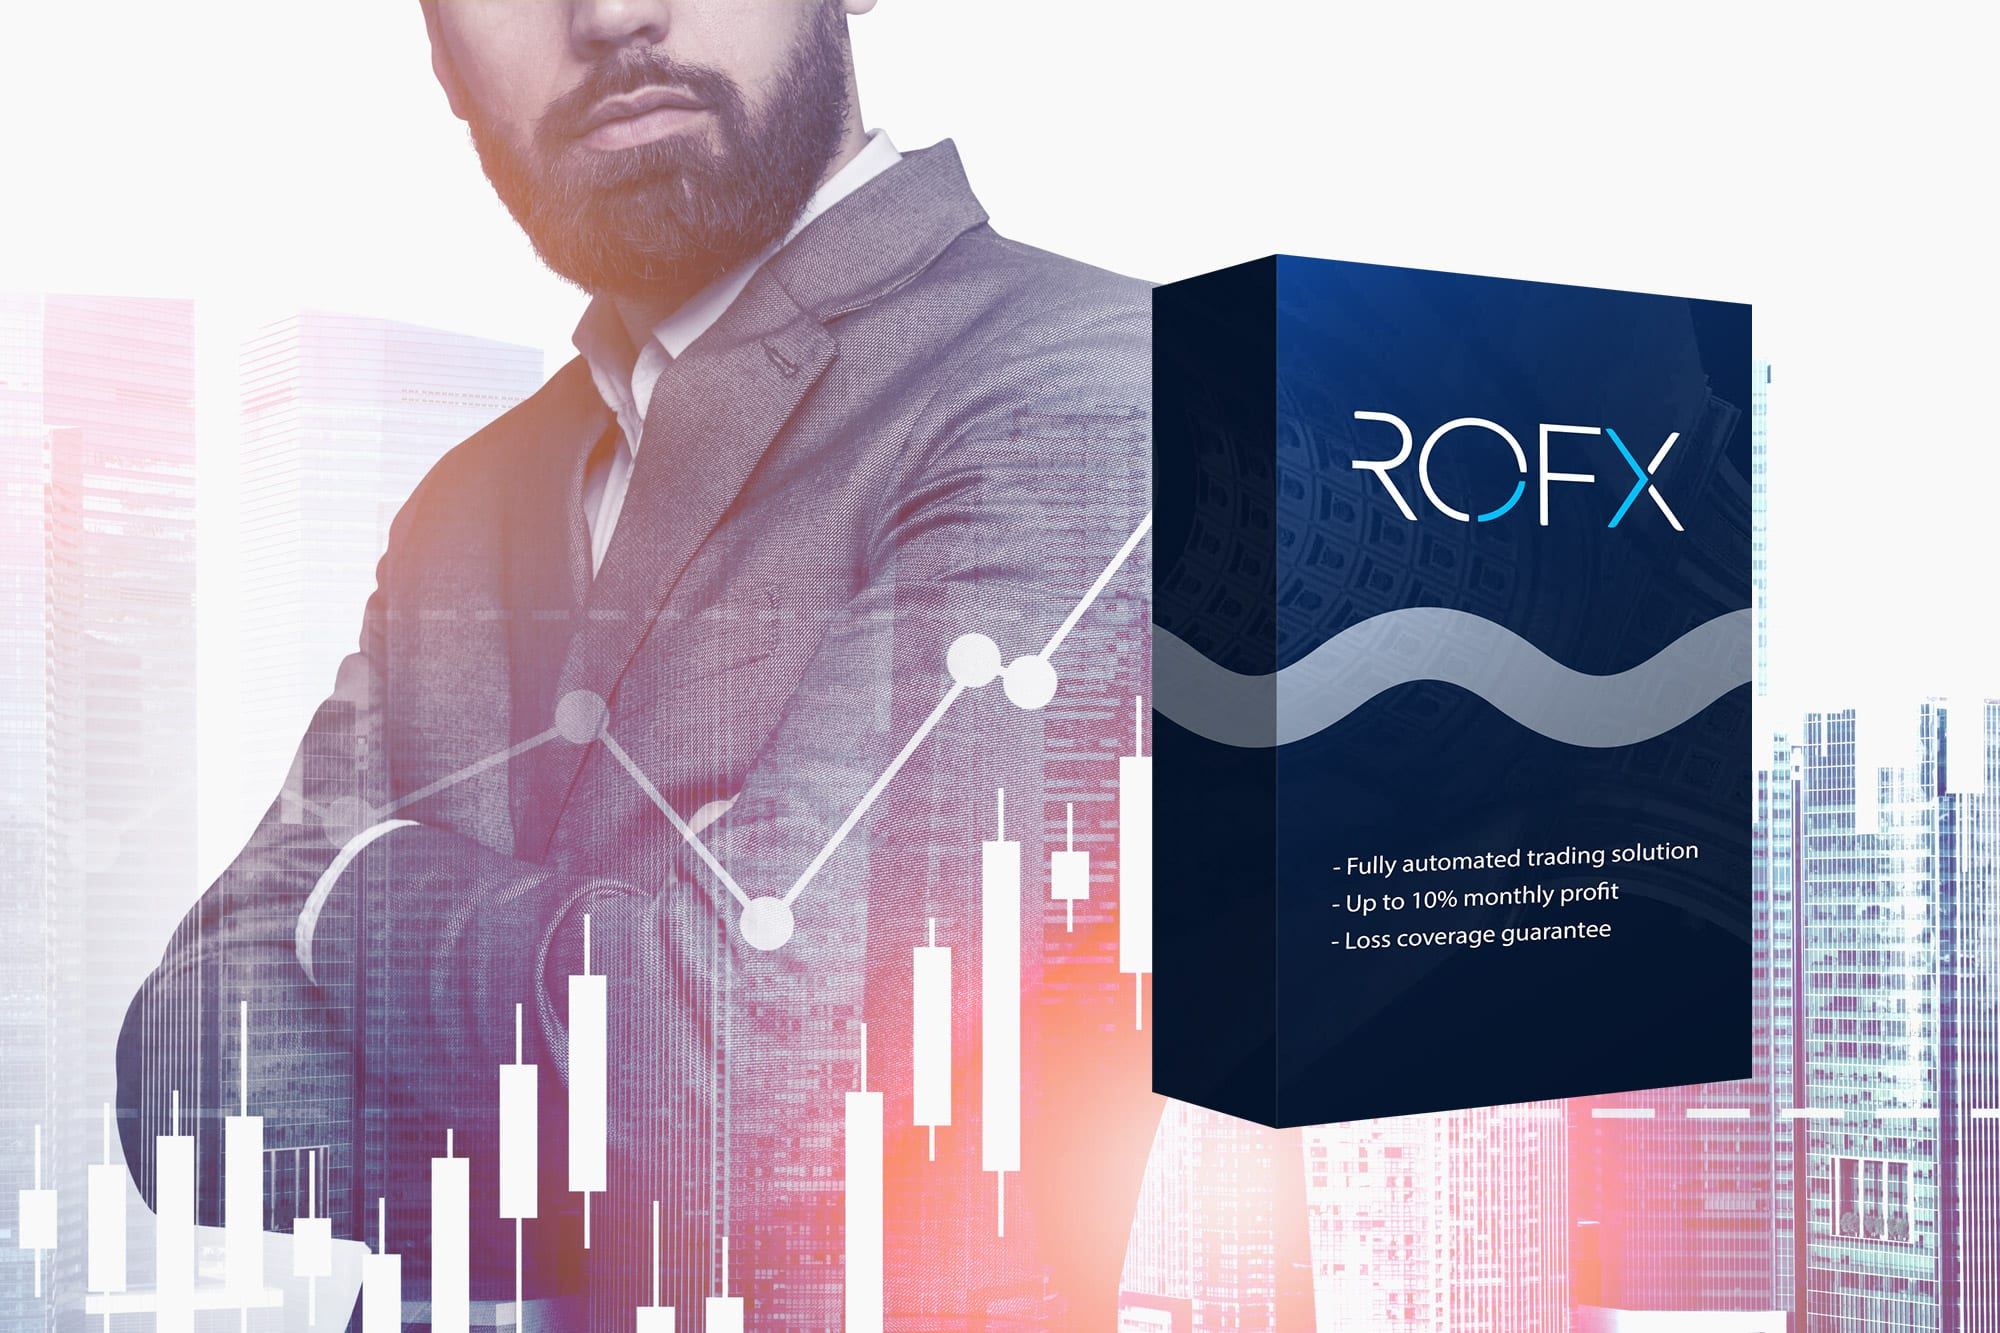 RoFx is going public in 3Q of 2021. Famous investor may take a bite.